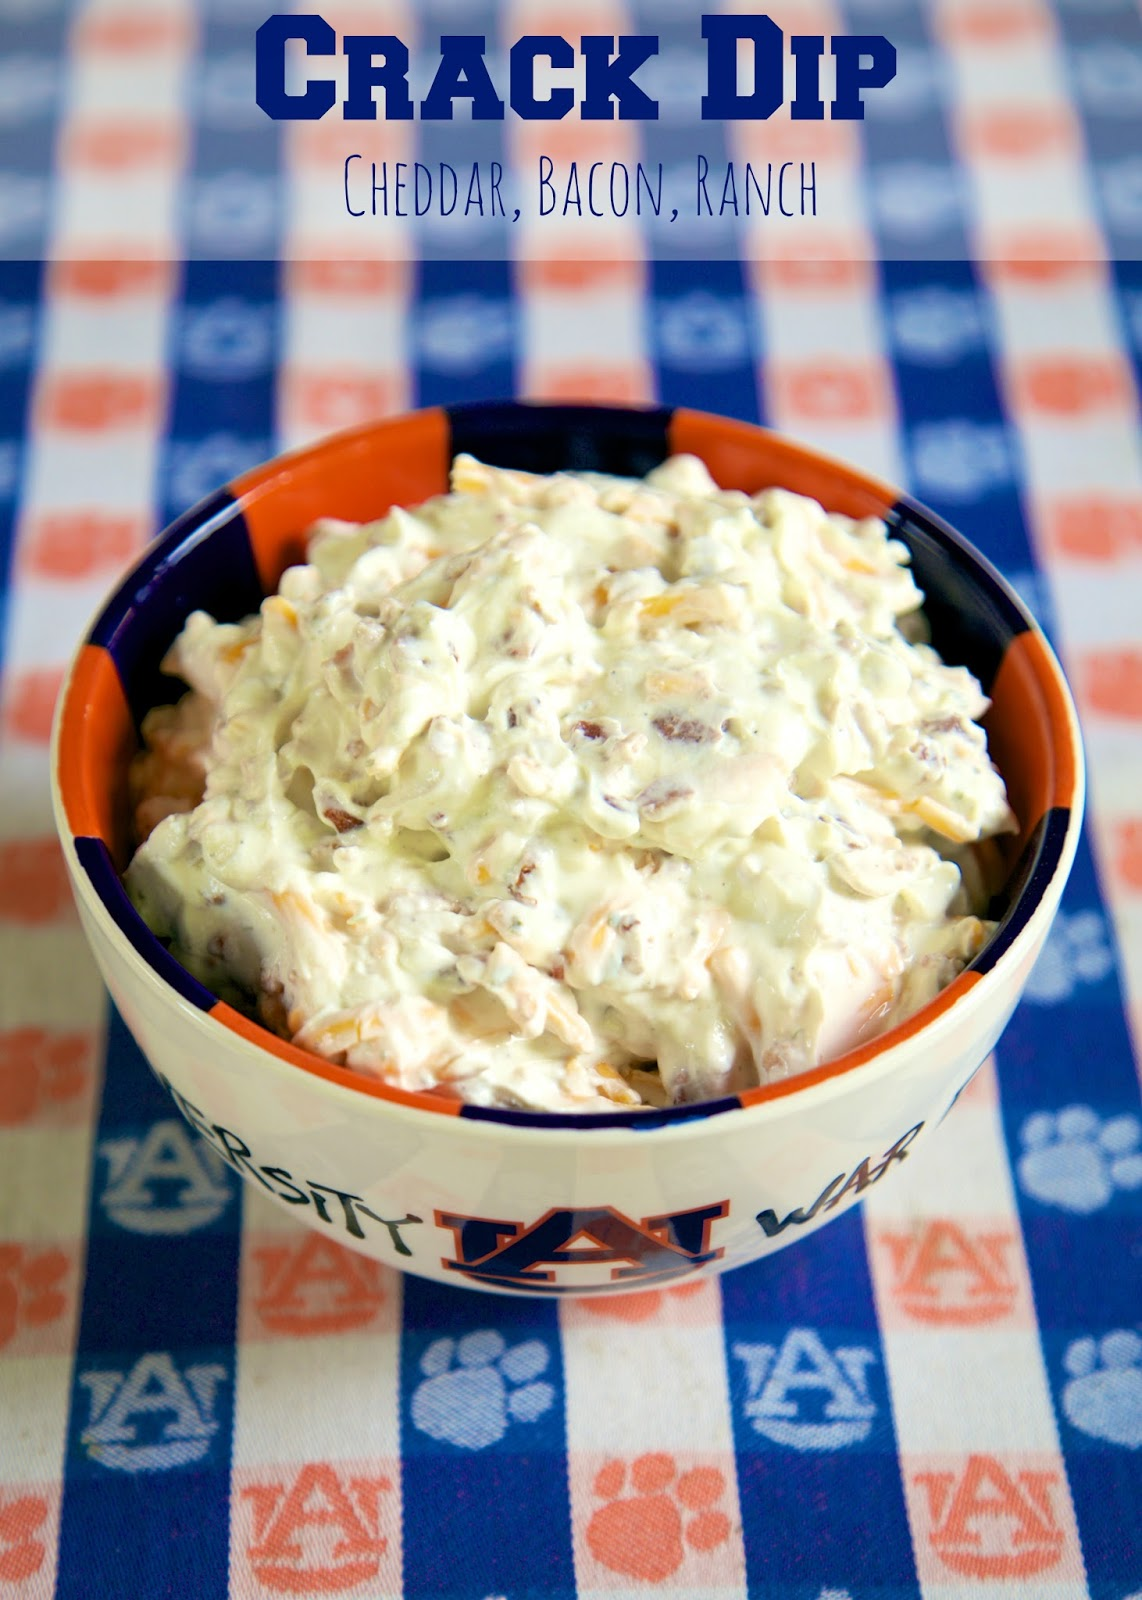 CRACK DIP - Cheddar Bacon Dip - I always double the recipe and there is never any leftovers! People go crazy for this dip!! Sour cream dip loaded with cheddar, bacon and ranch. This dip is crazy addictive!! SO good!